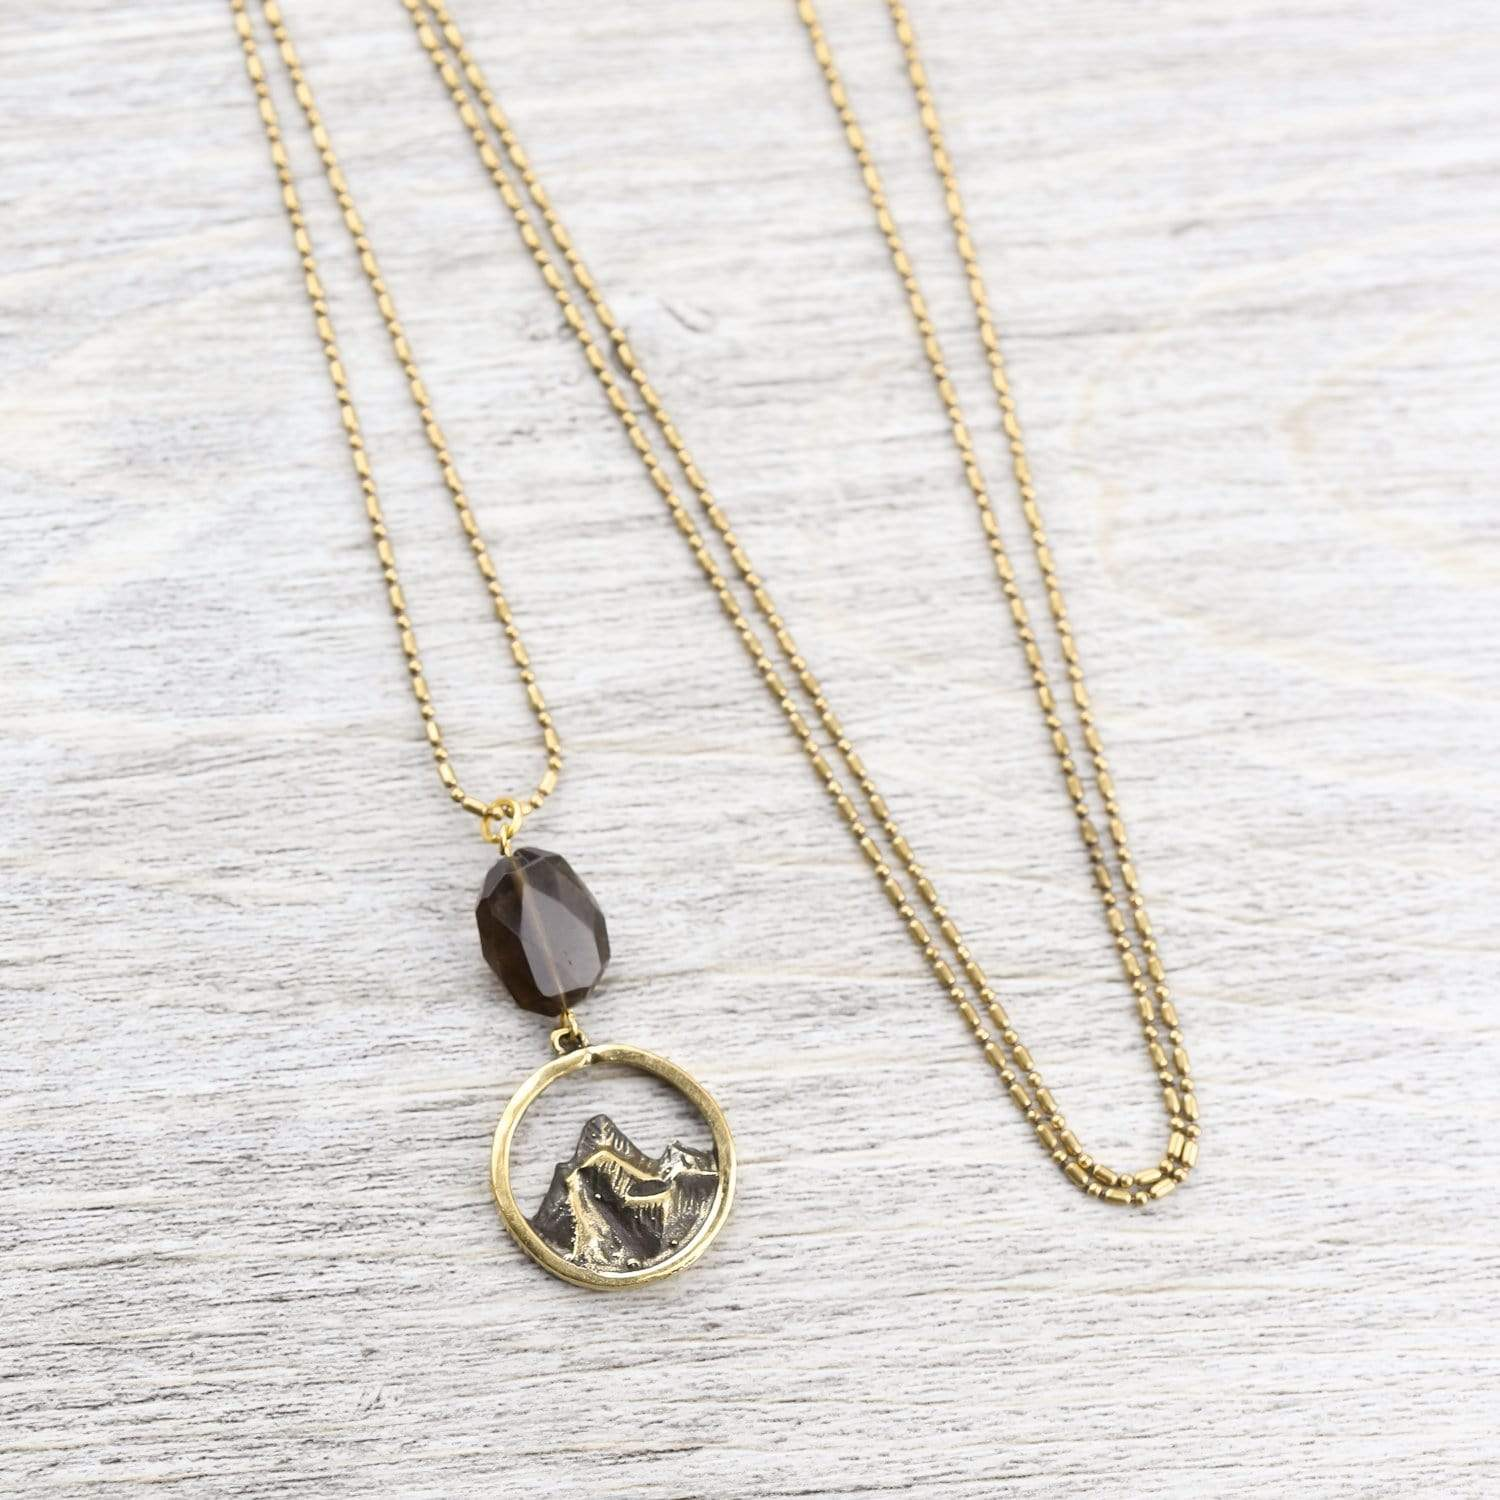 Necklaces Everest Necklace with Smoky Quartz JN803